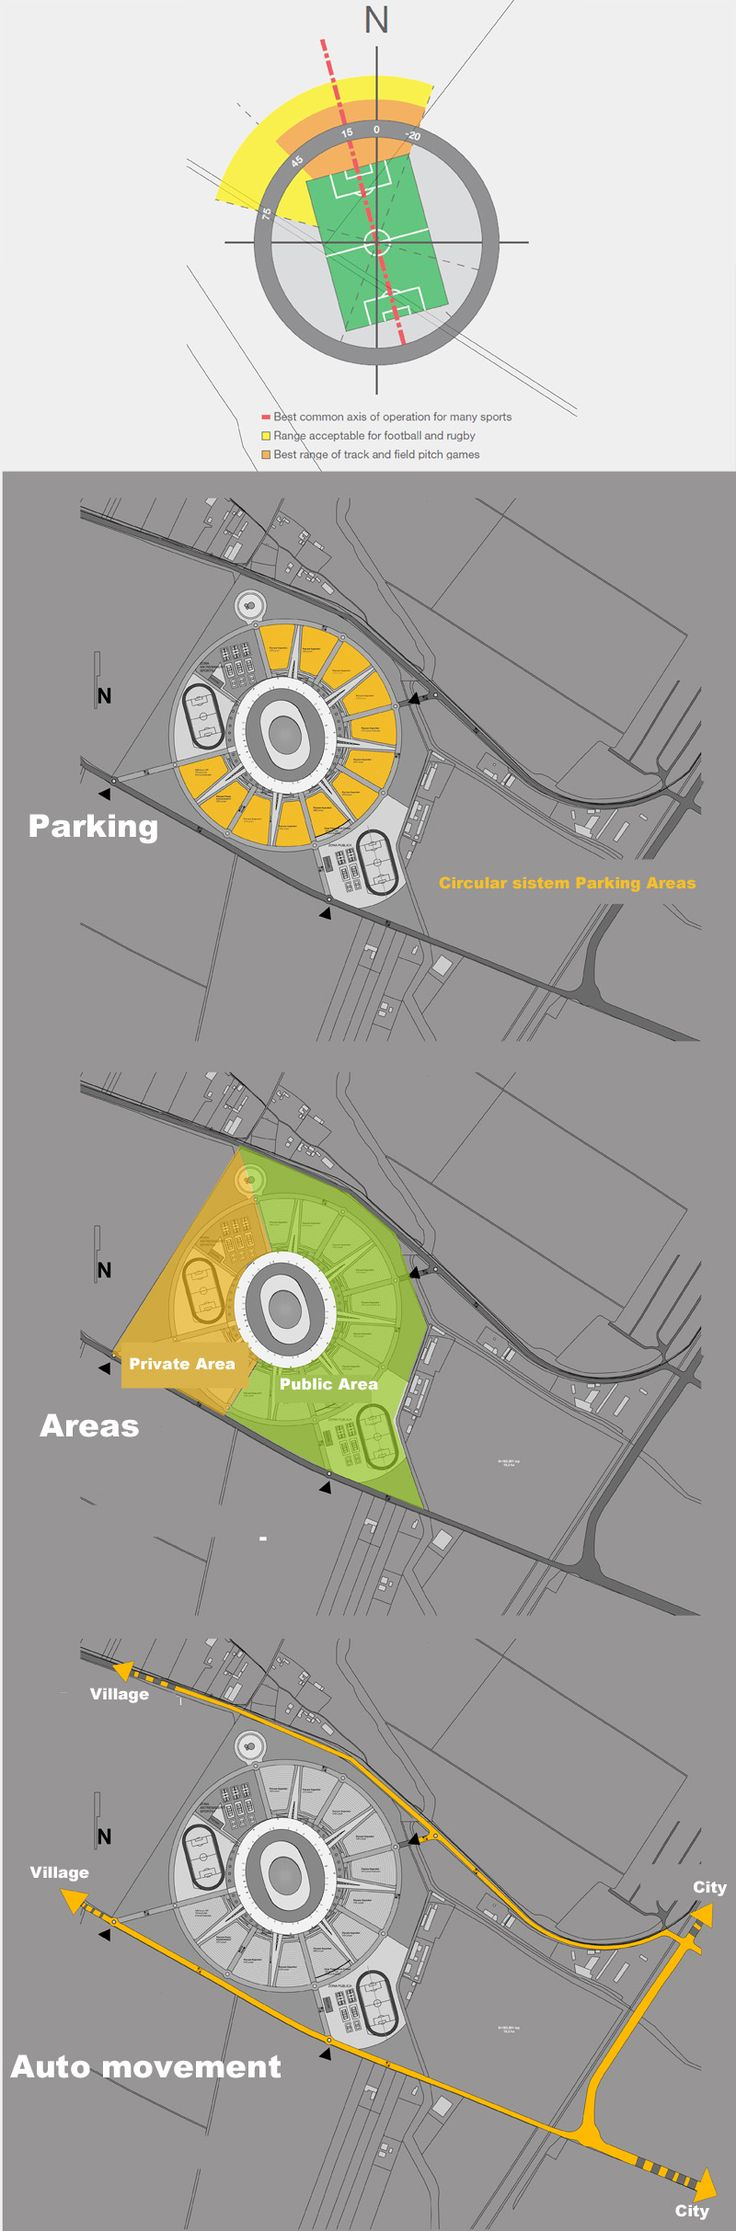 Pin by anusha ramesh on design pinterest for Site plan with landscape